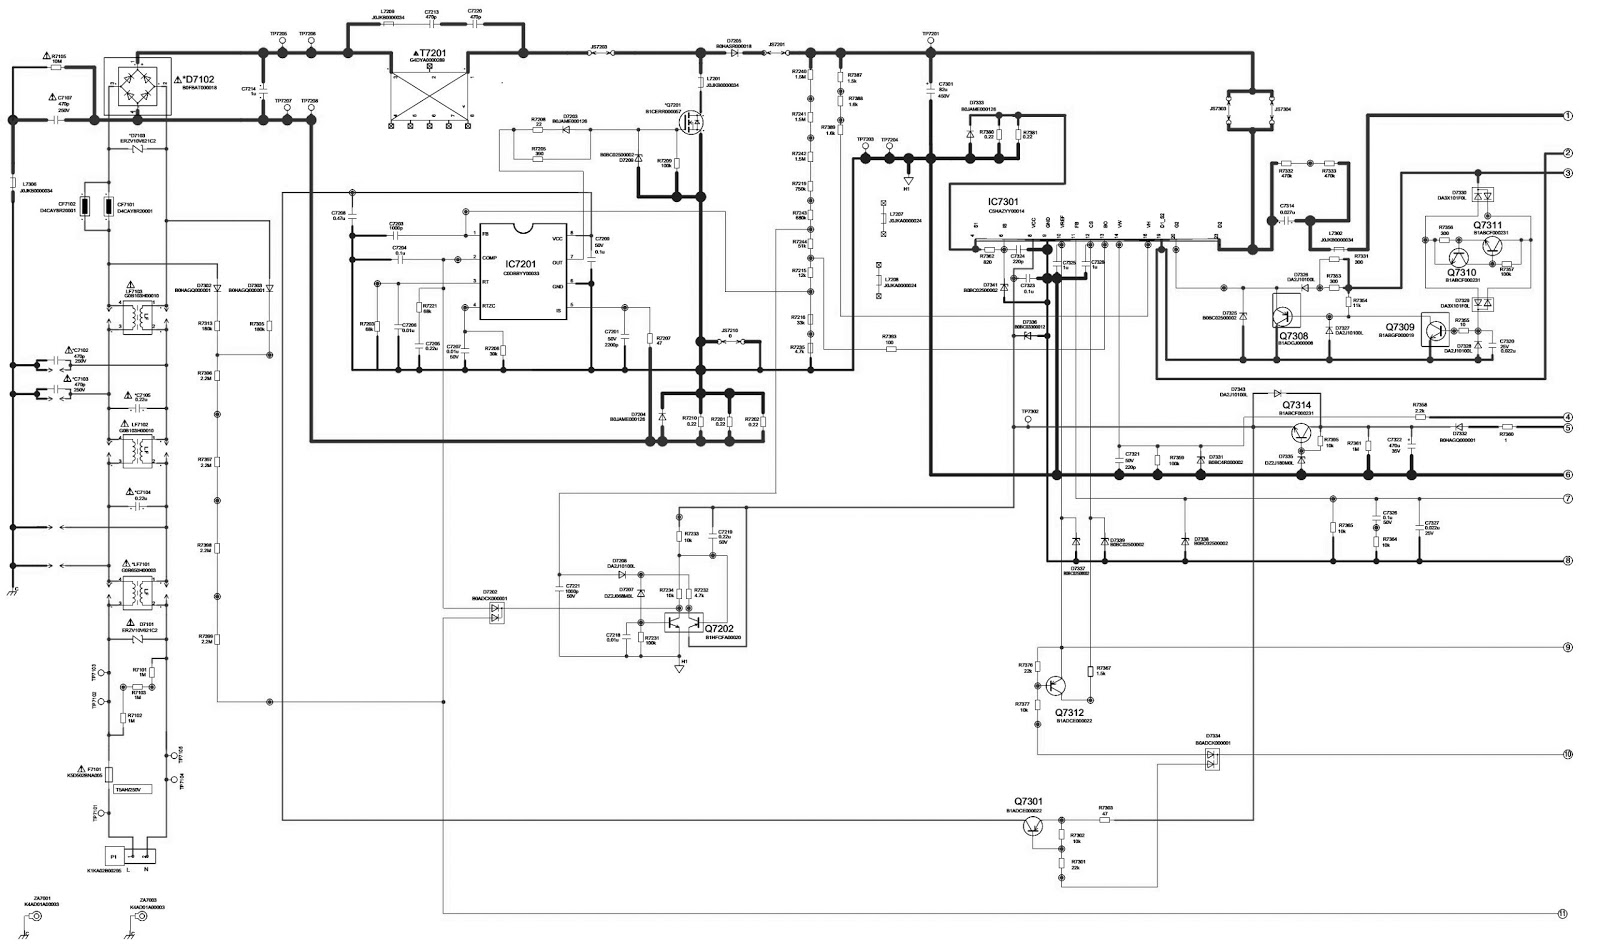 tnpa5364bj - smps schematic - panasonic th l32x30c